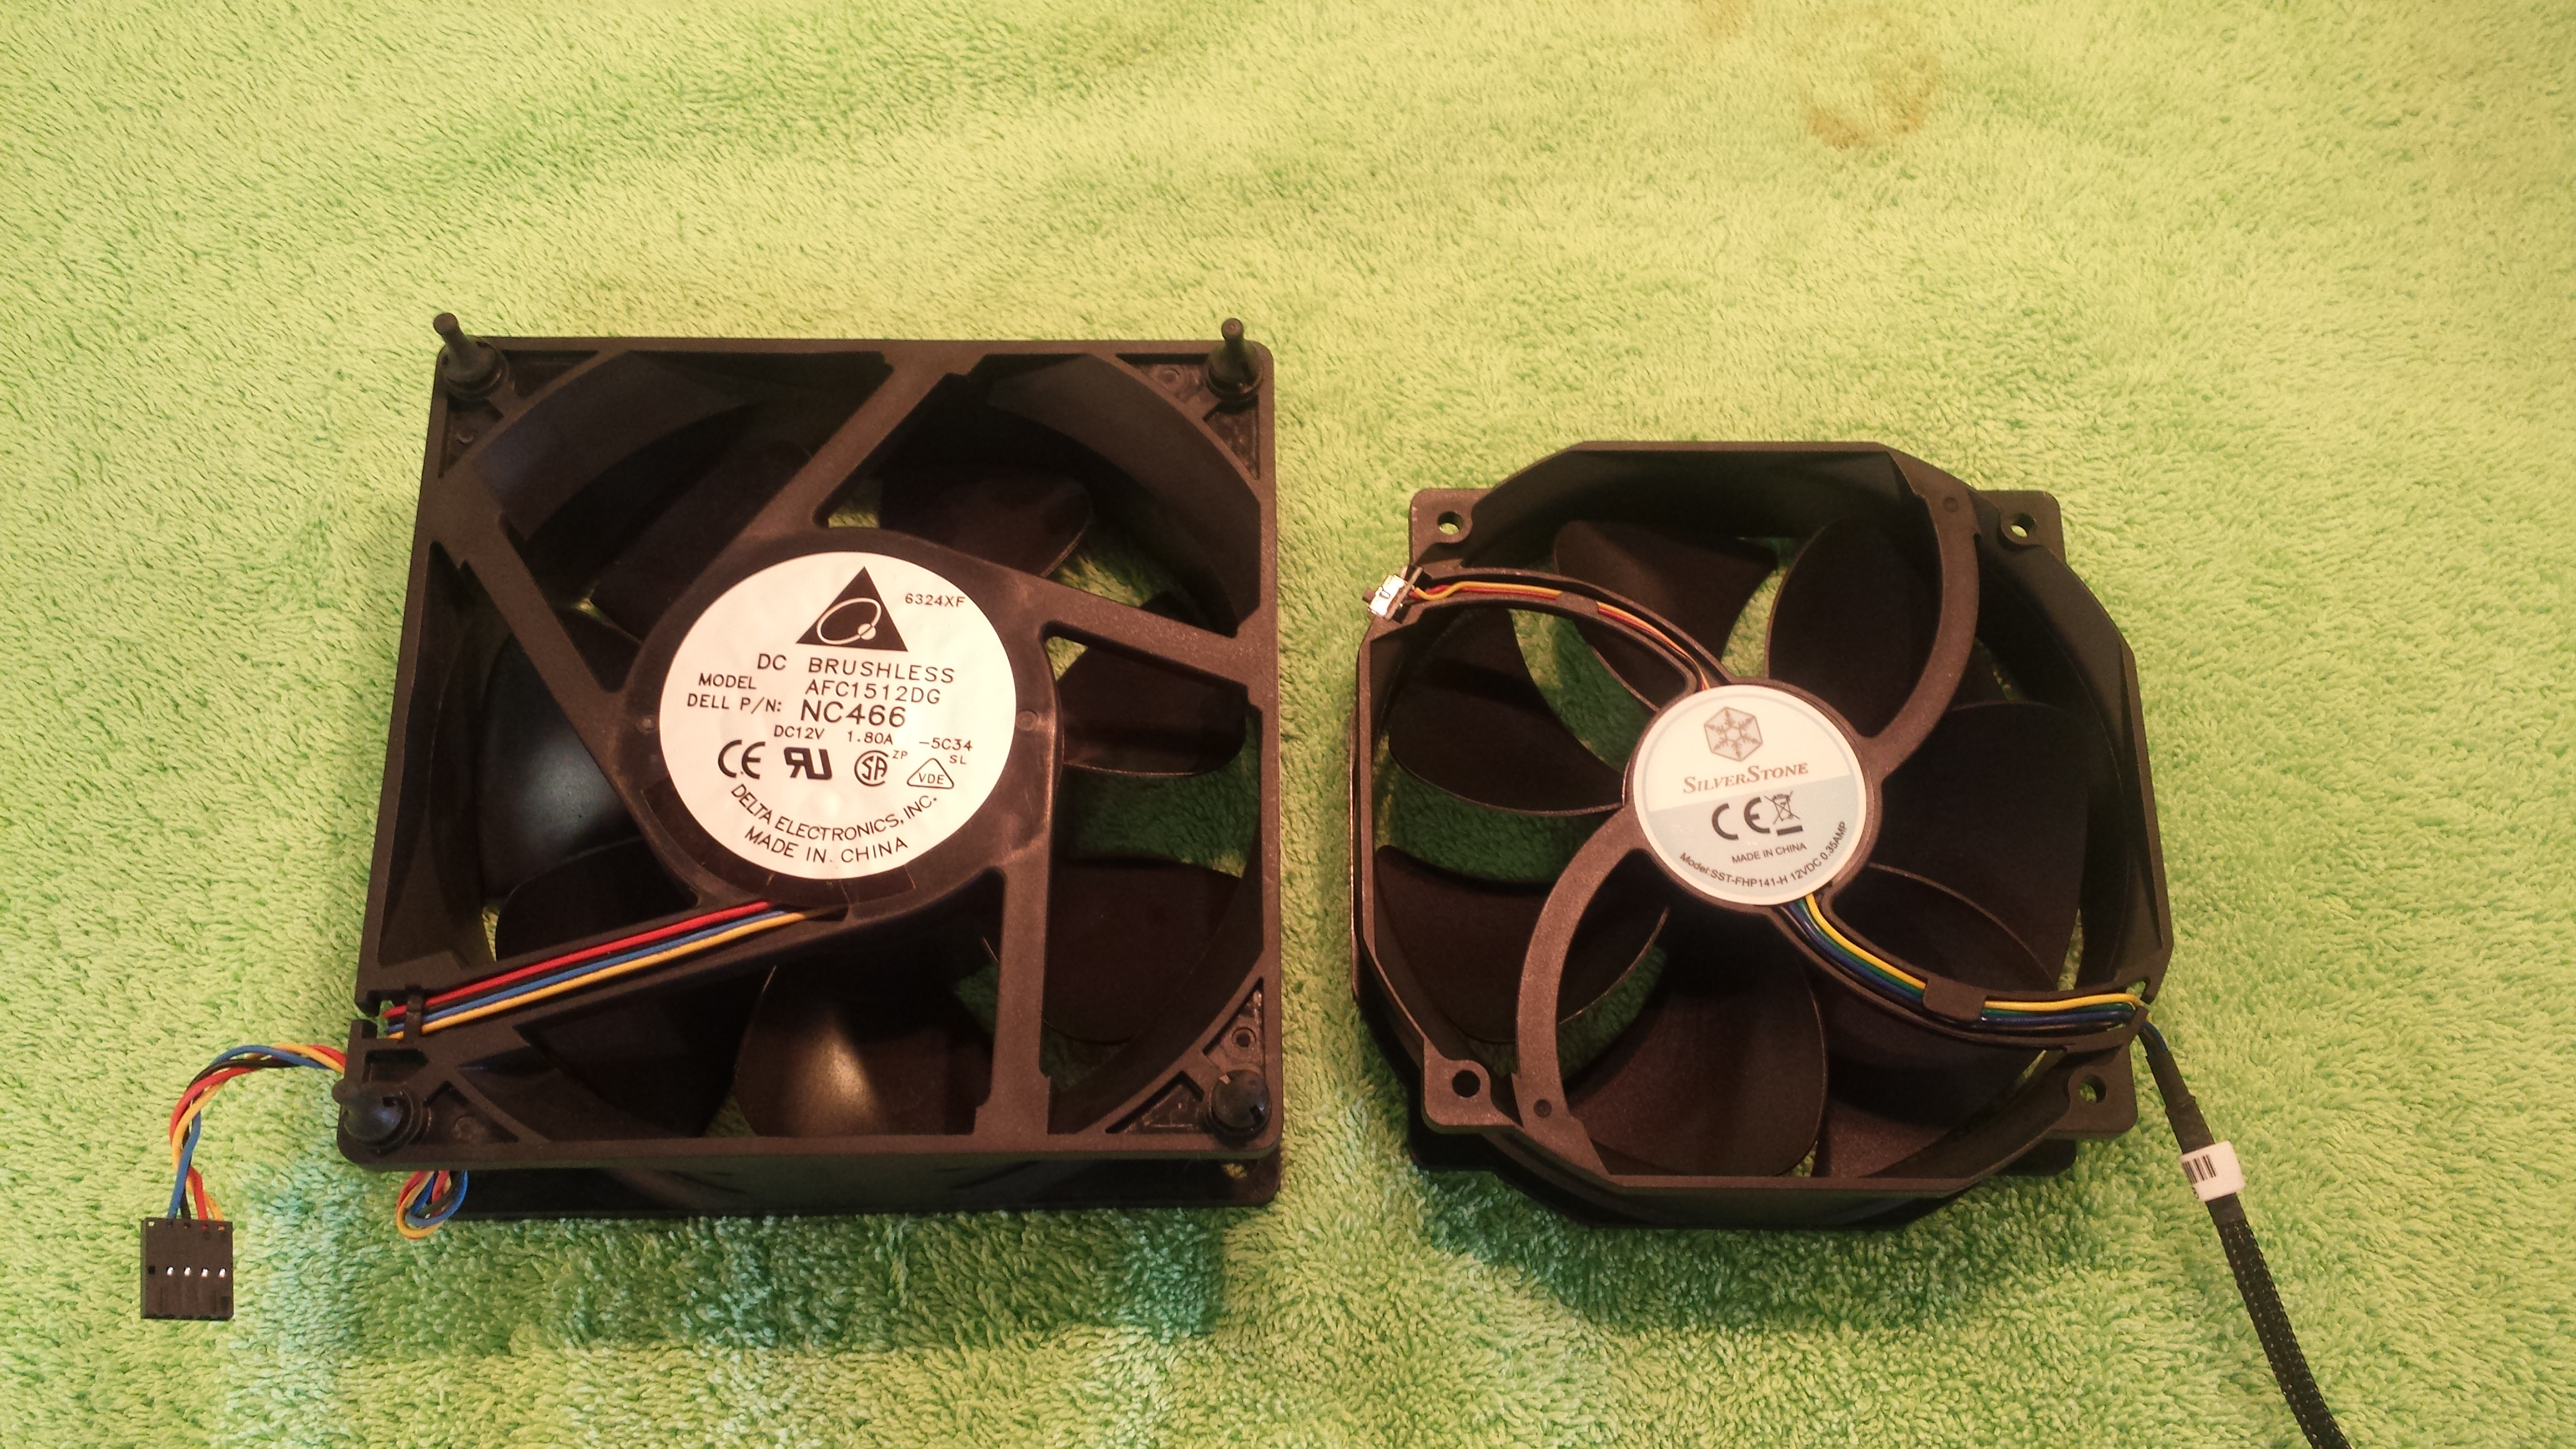 150X50mm next to Silverstone 140X38mm .35A.